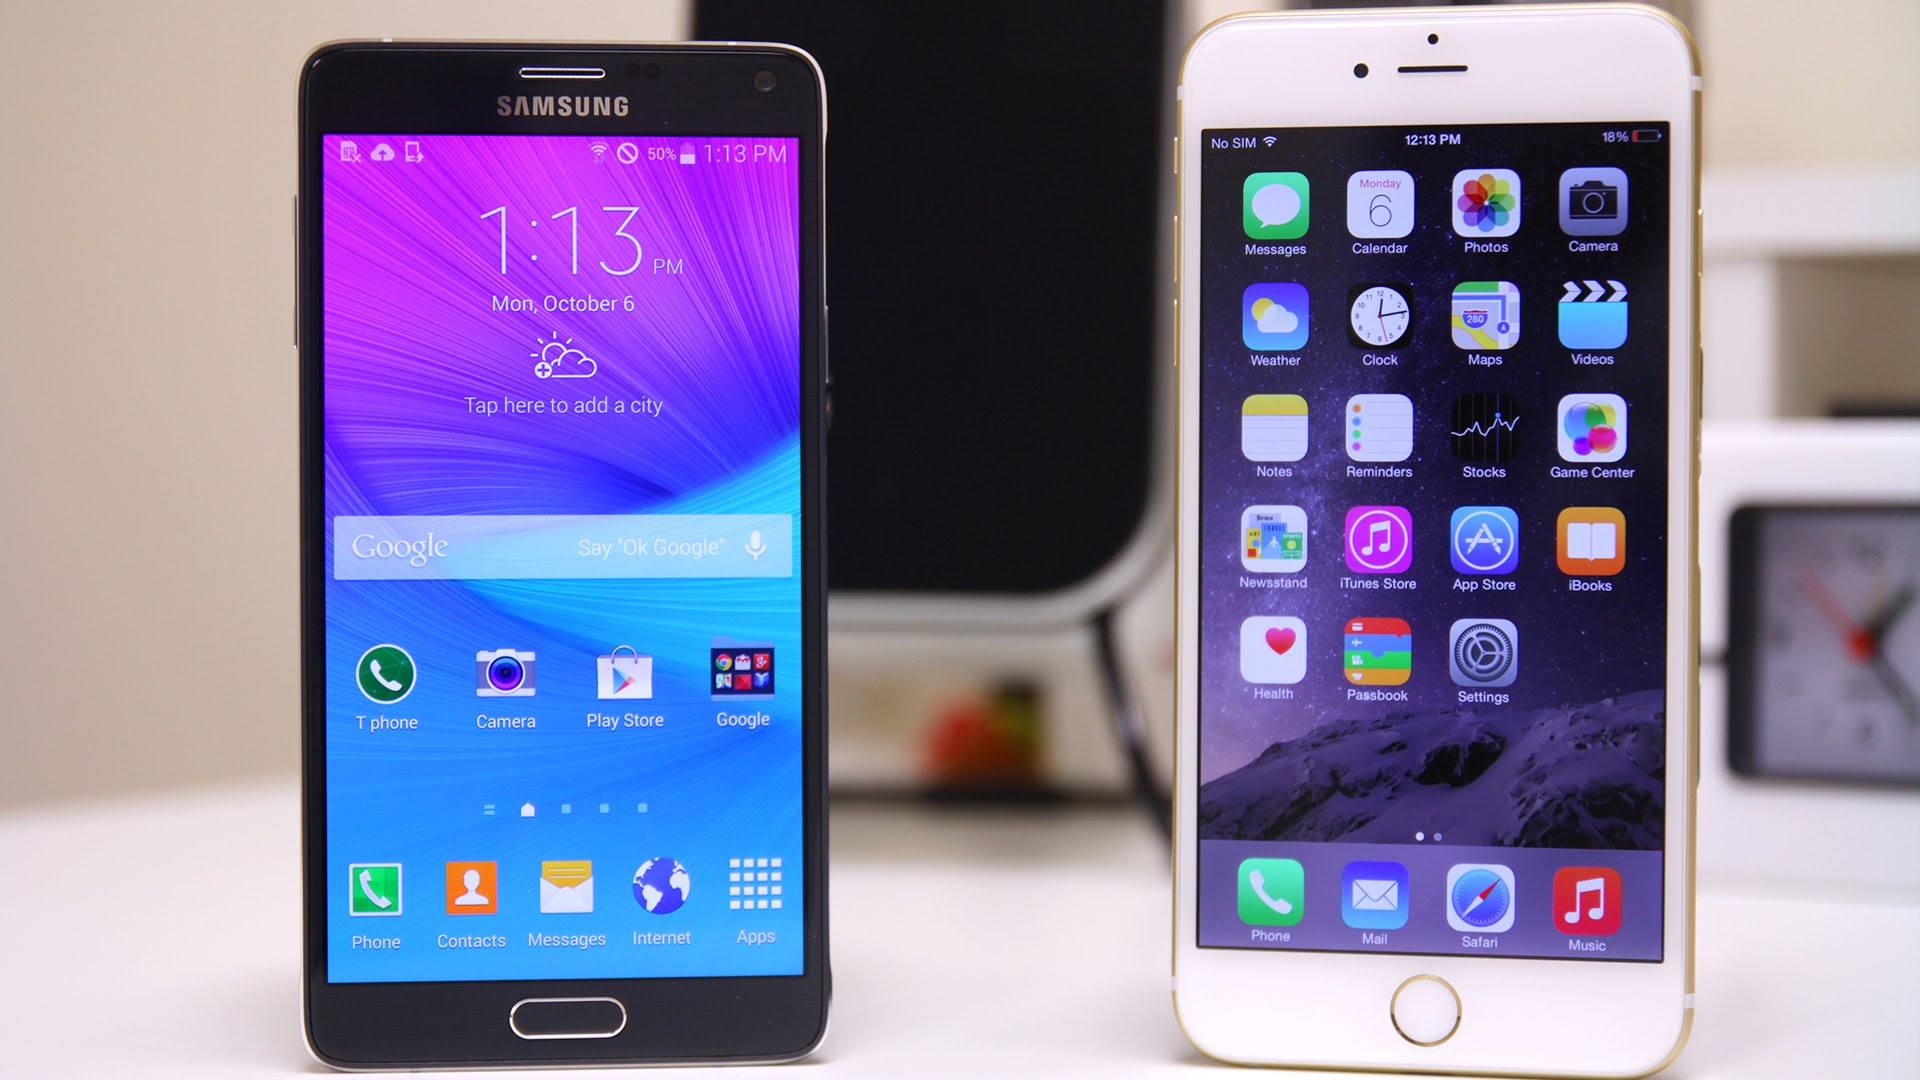 iPhone 6 Plus vs Galaxy Note 4 Hardware